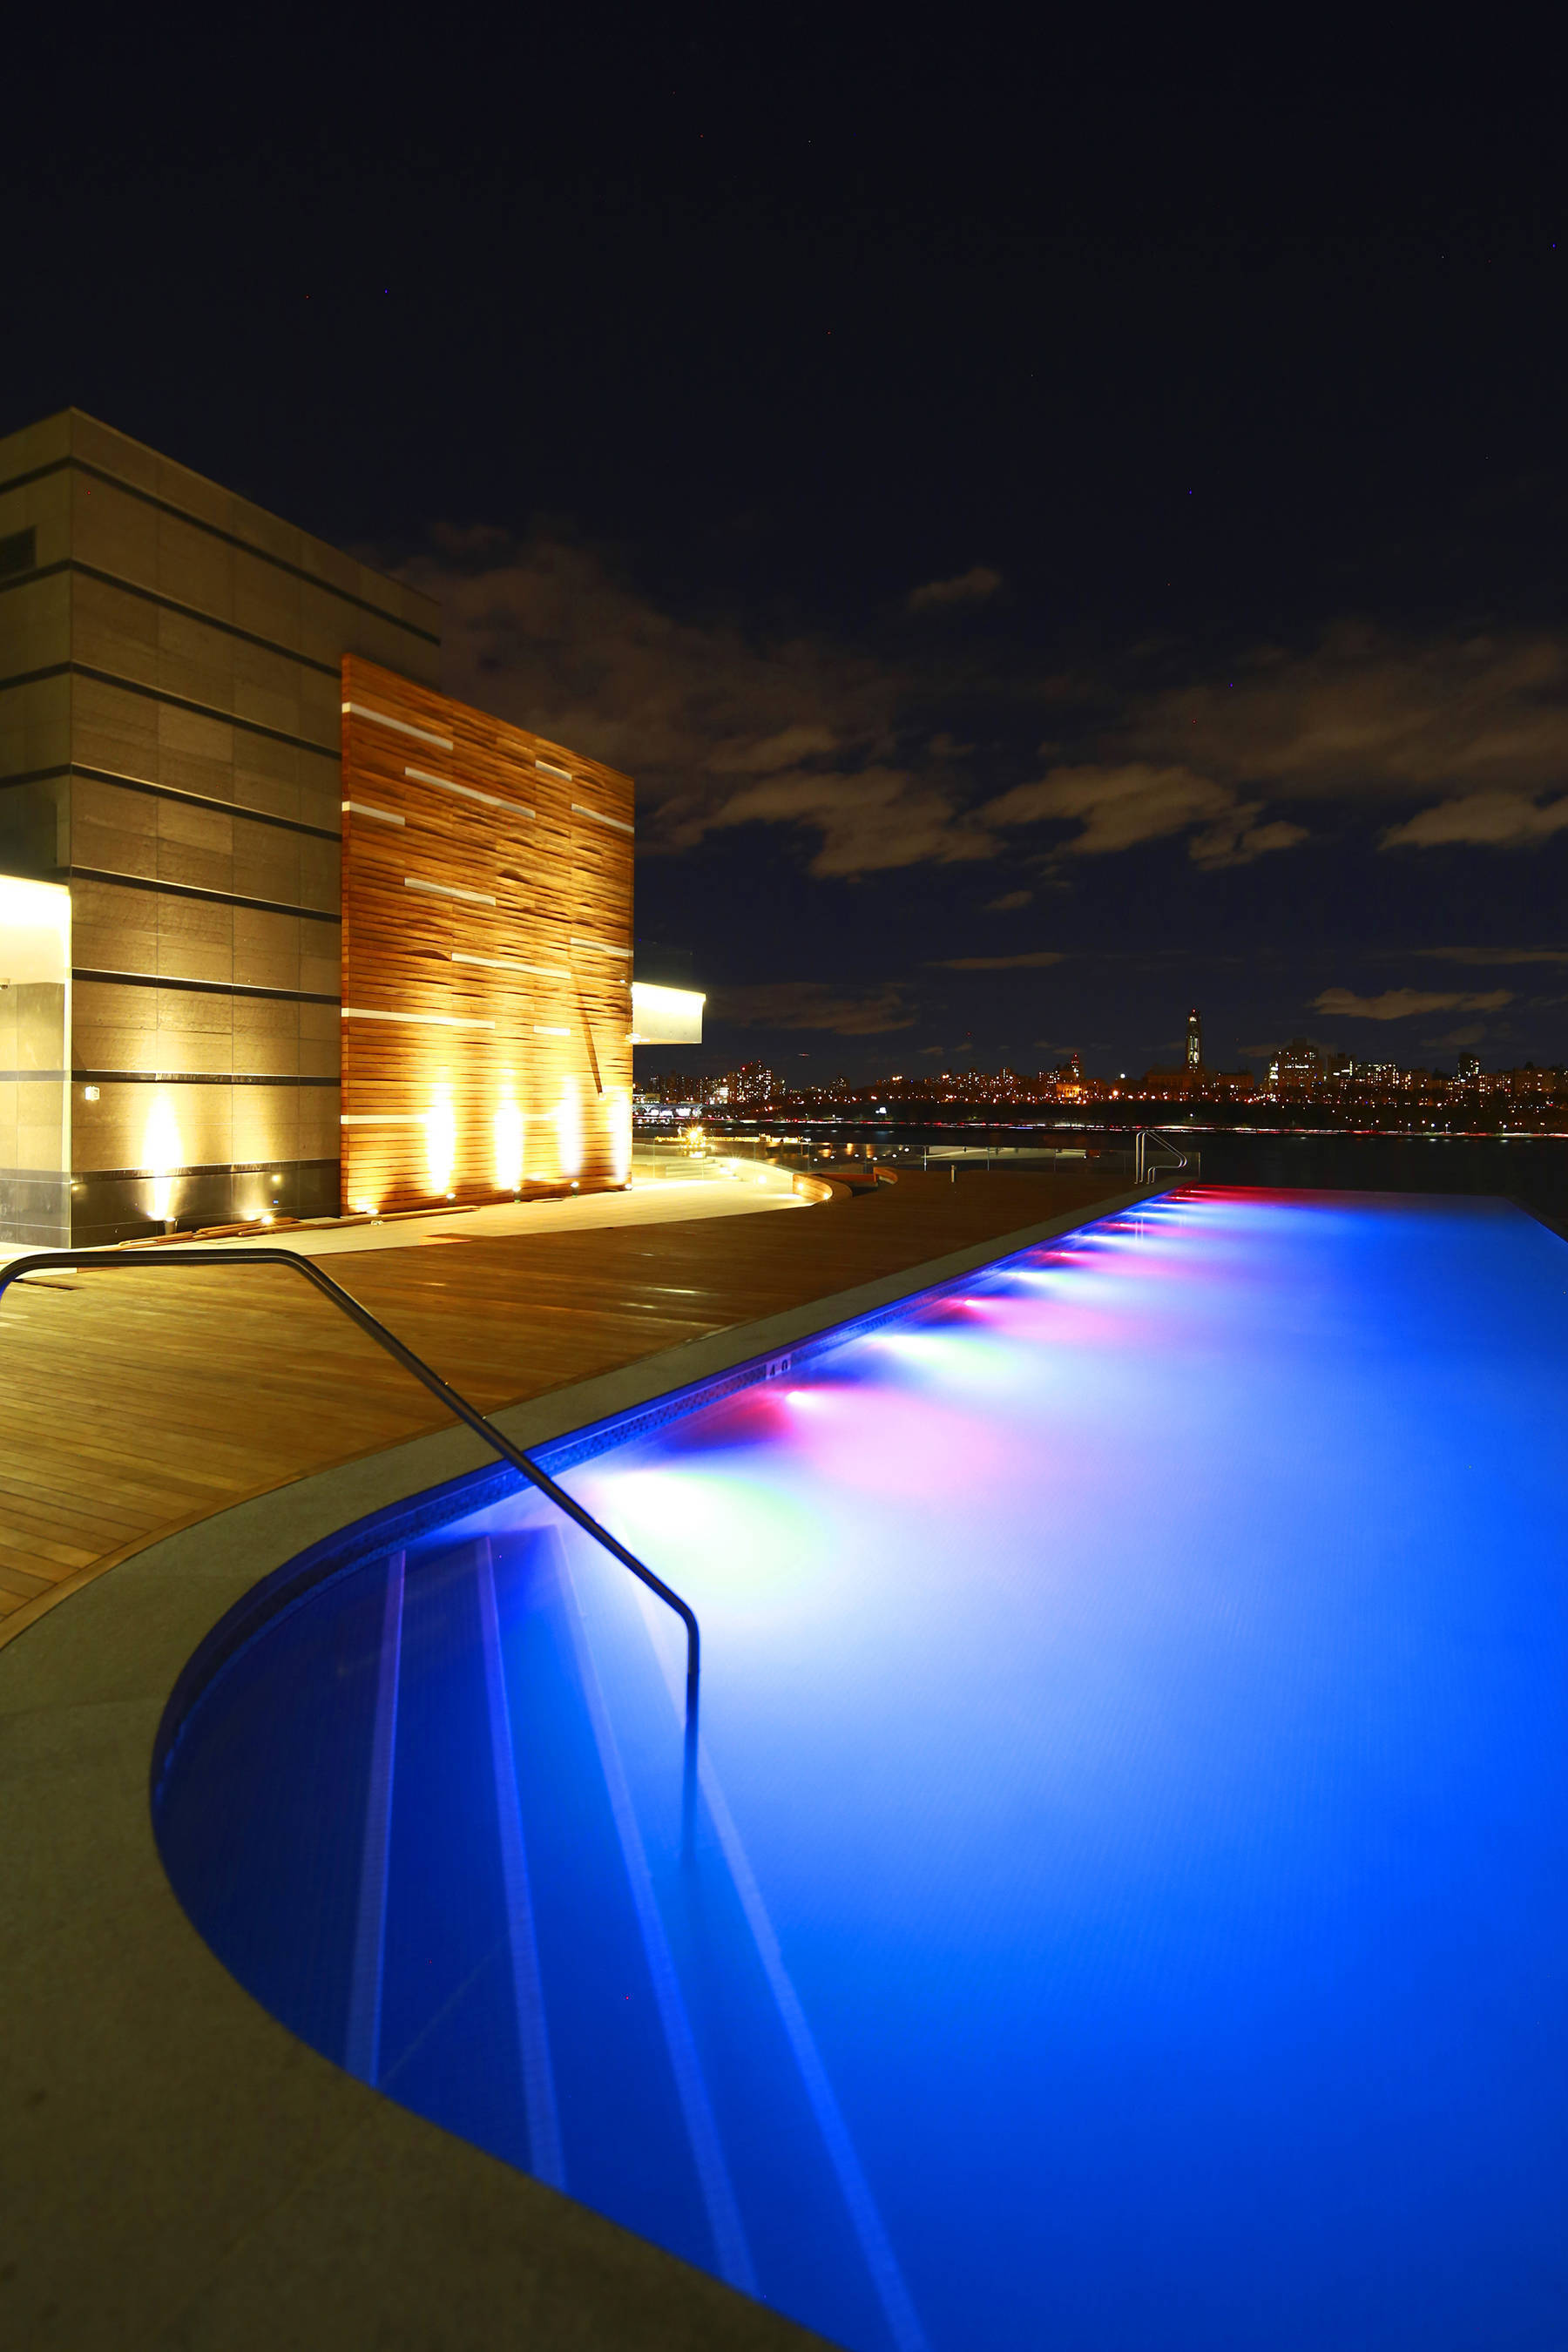 Sojo Spa Nj Groupon Spa Rooftop Nj Check Out The New Midtown Spa With A Rooftop Hot